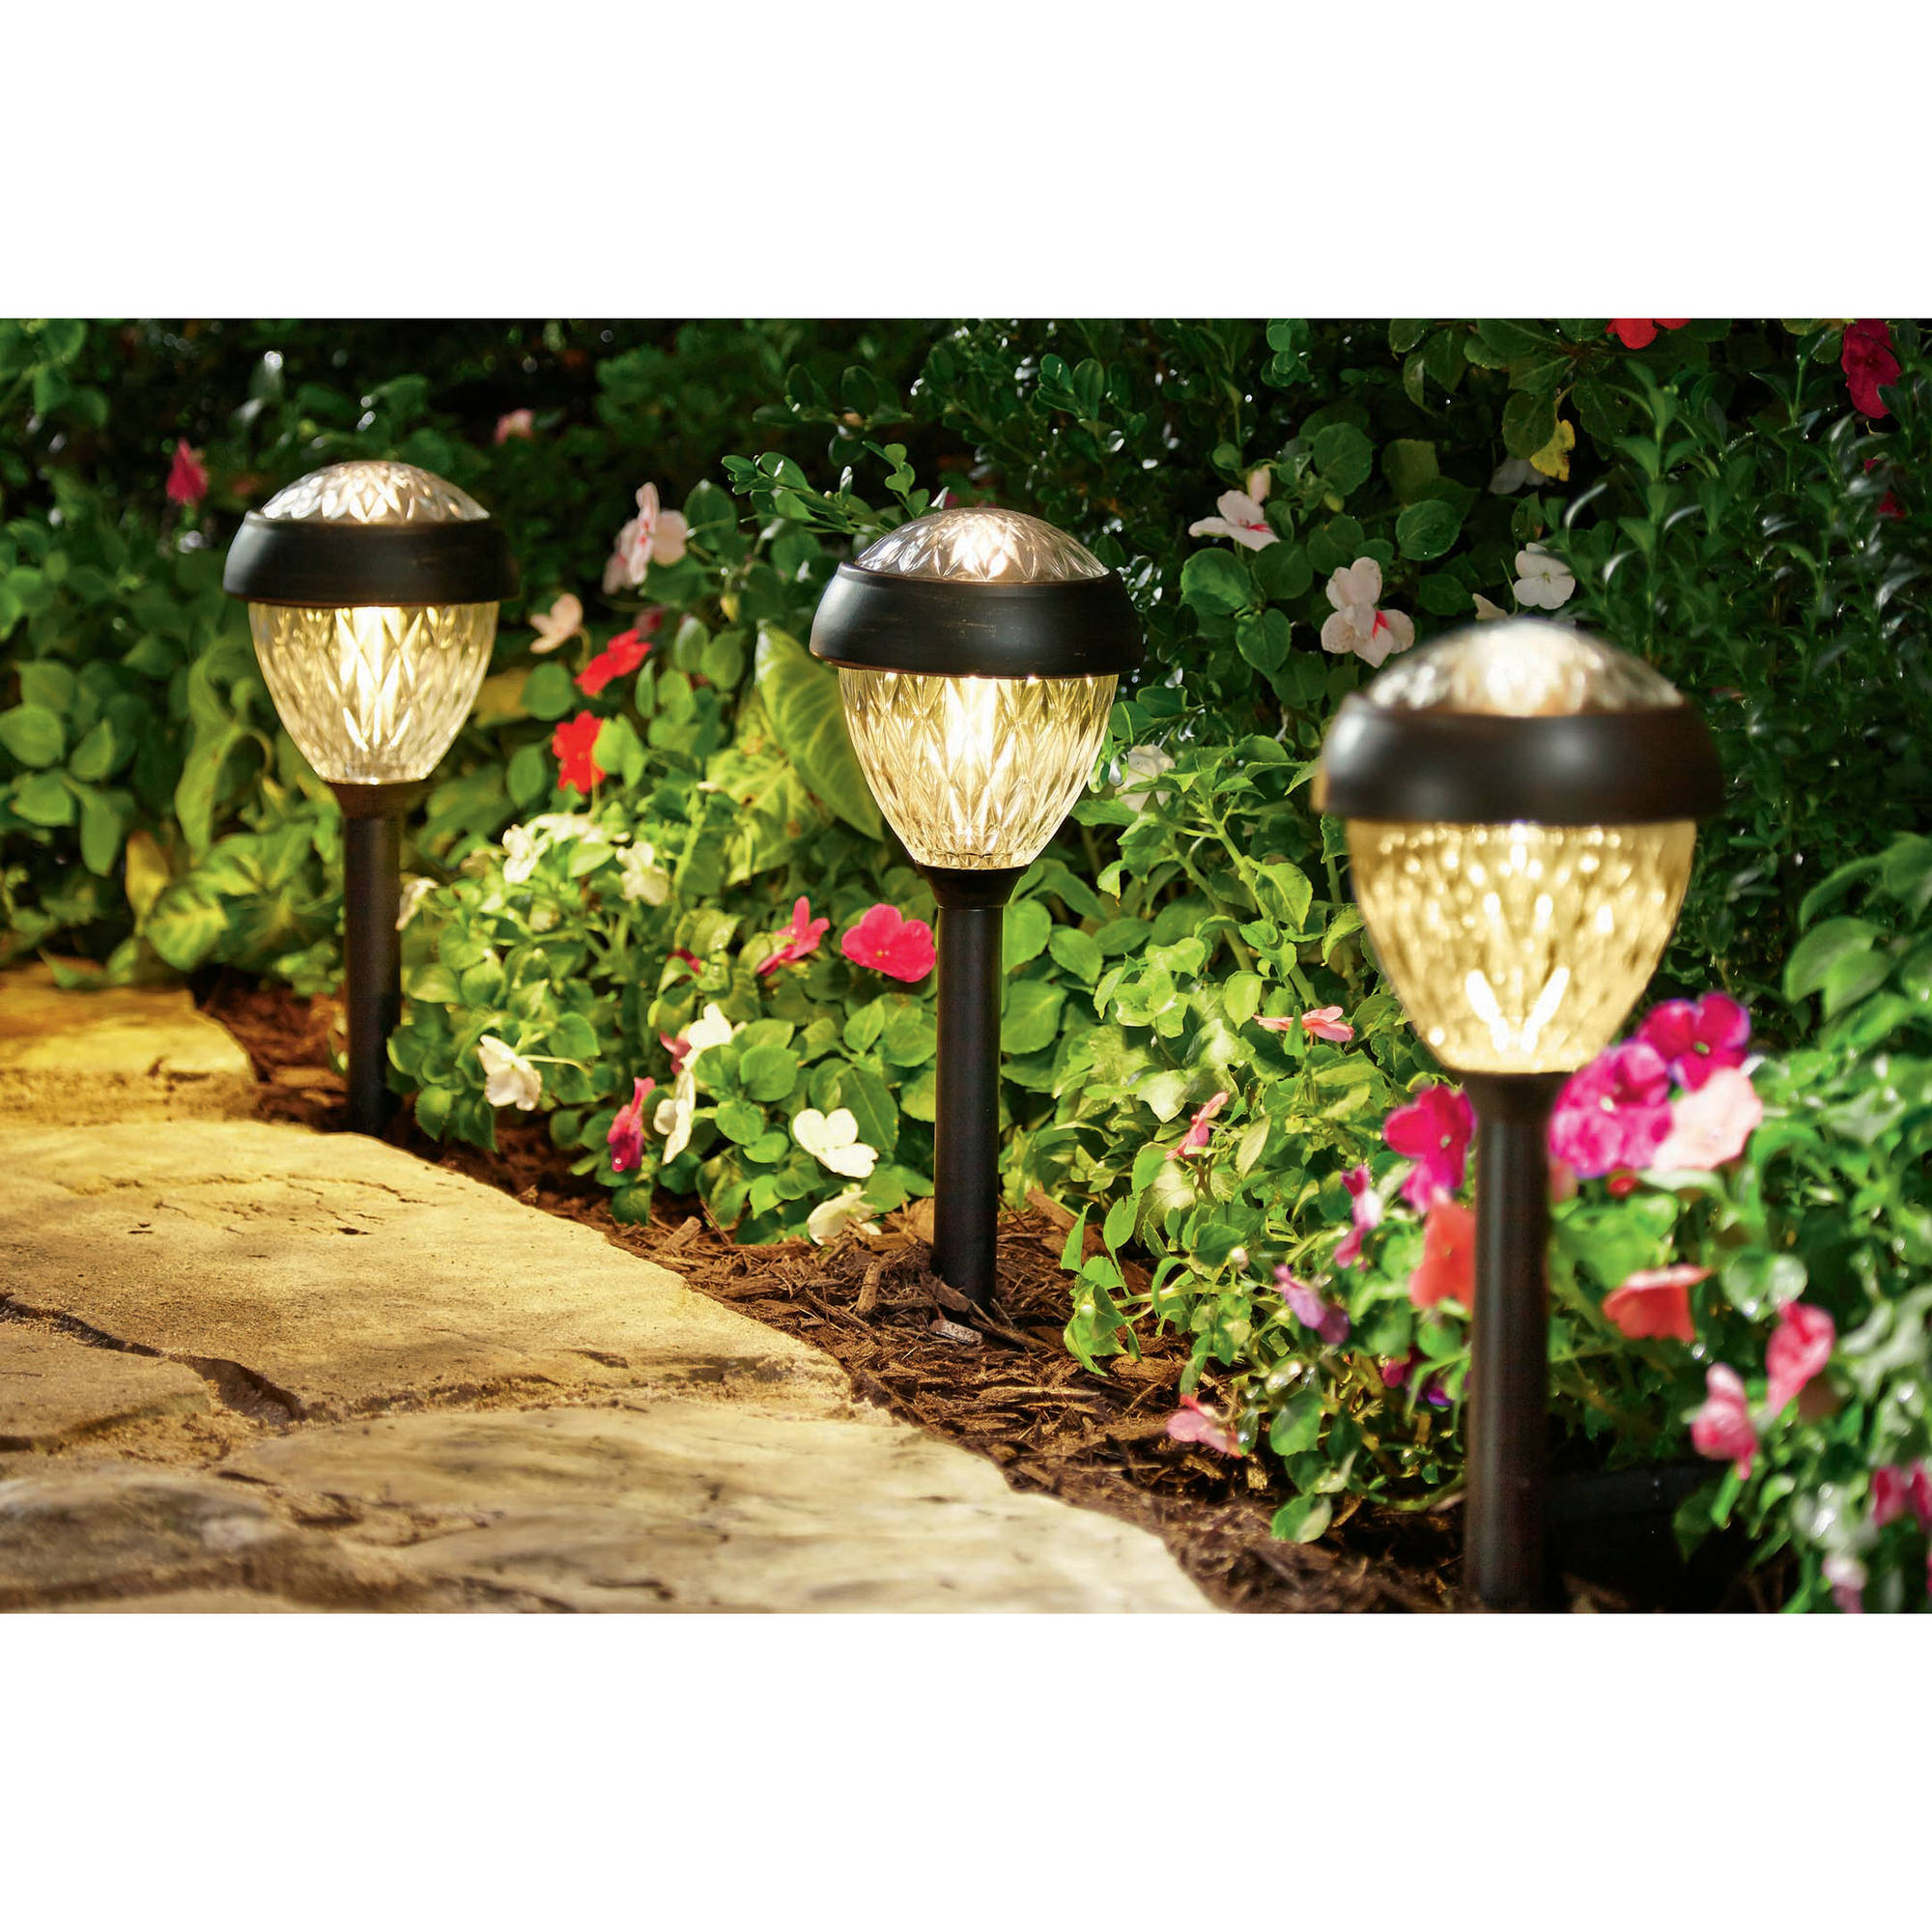 Better Homes and Gardens Park View Solar Powered Landscape Light